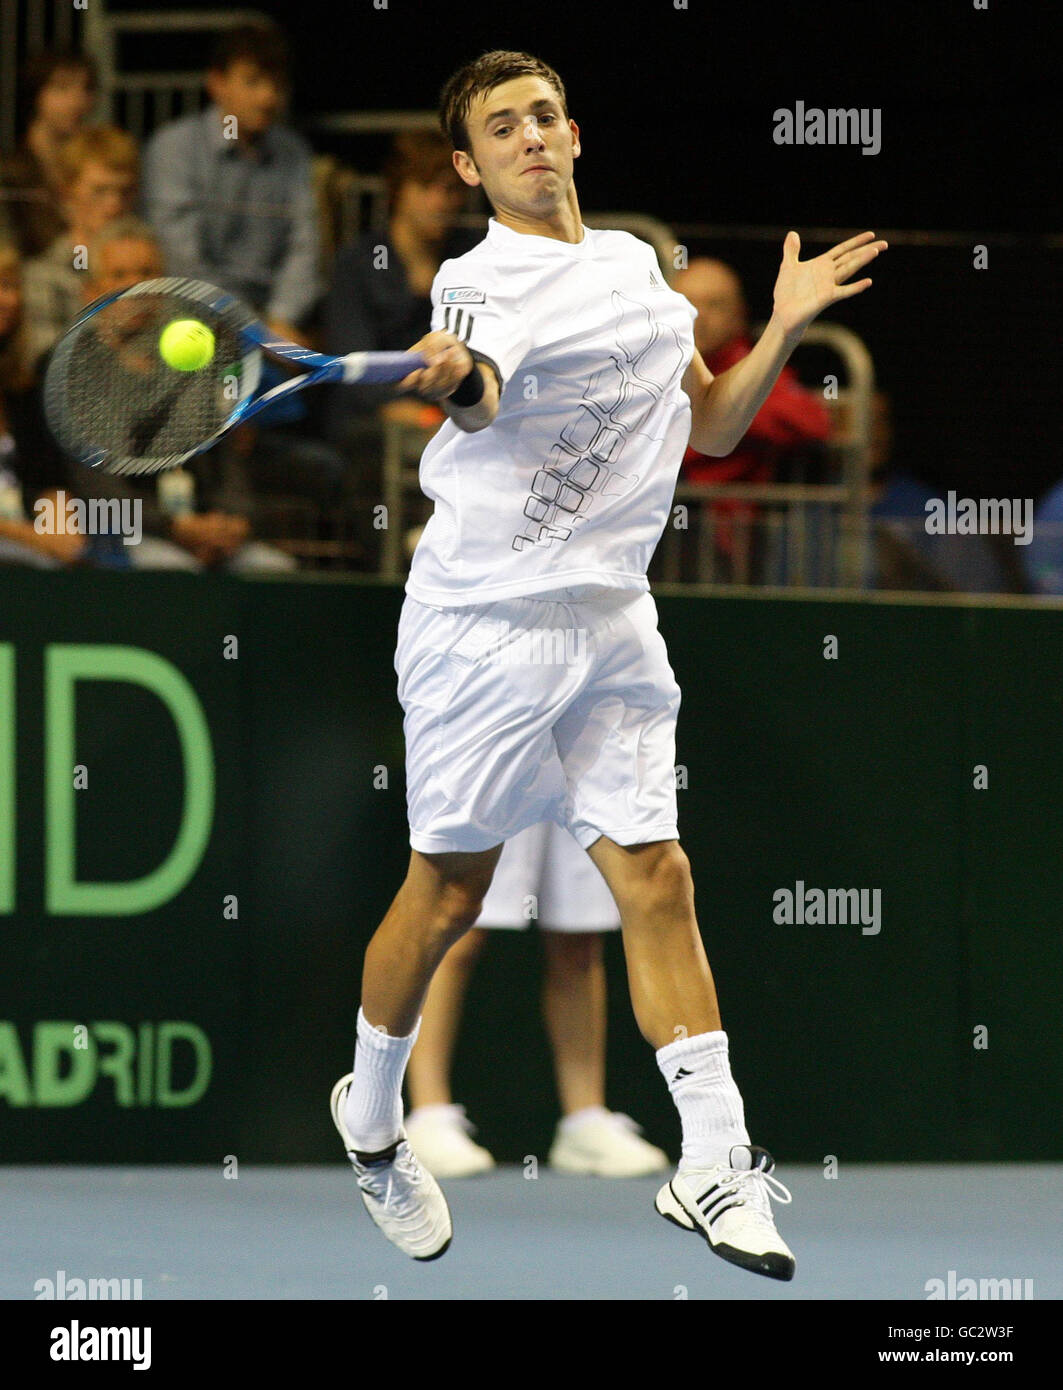 Tennis - Davis Cup - Great Britain v Poland - Day One - Echo Arena Stock Photo